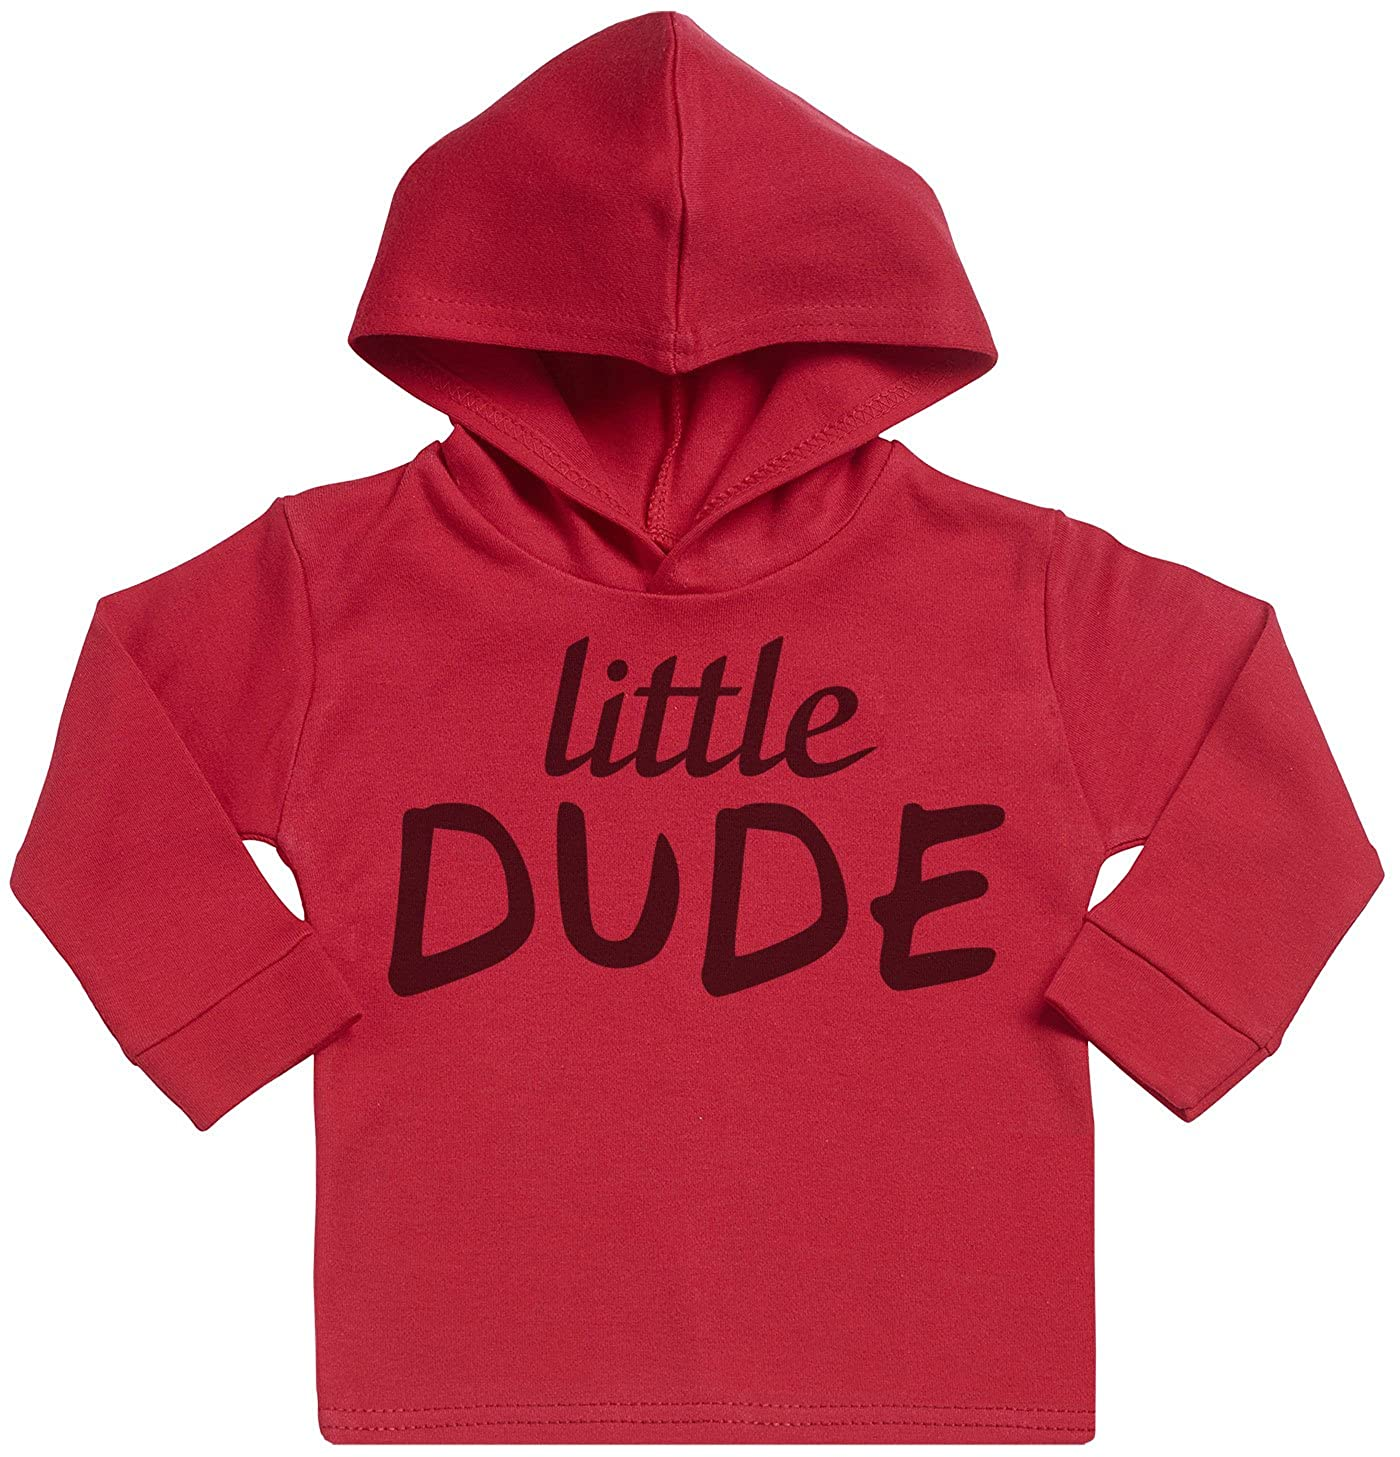 SR - Little Dude Cotton Baby Hoodie - Baby Hoody - Baby Sweatshirt with Hood - Baby Gift SR15_H